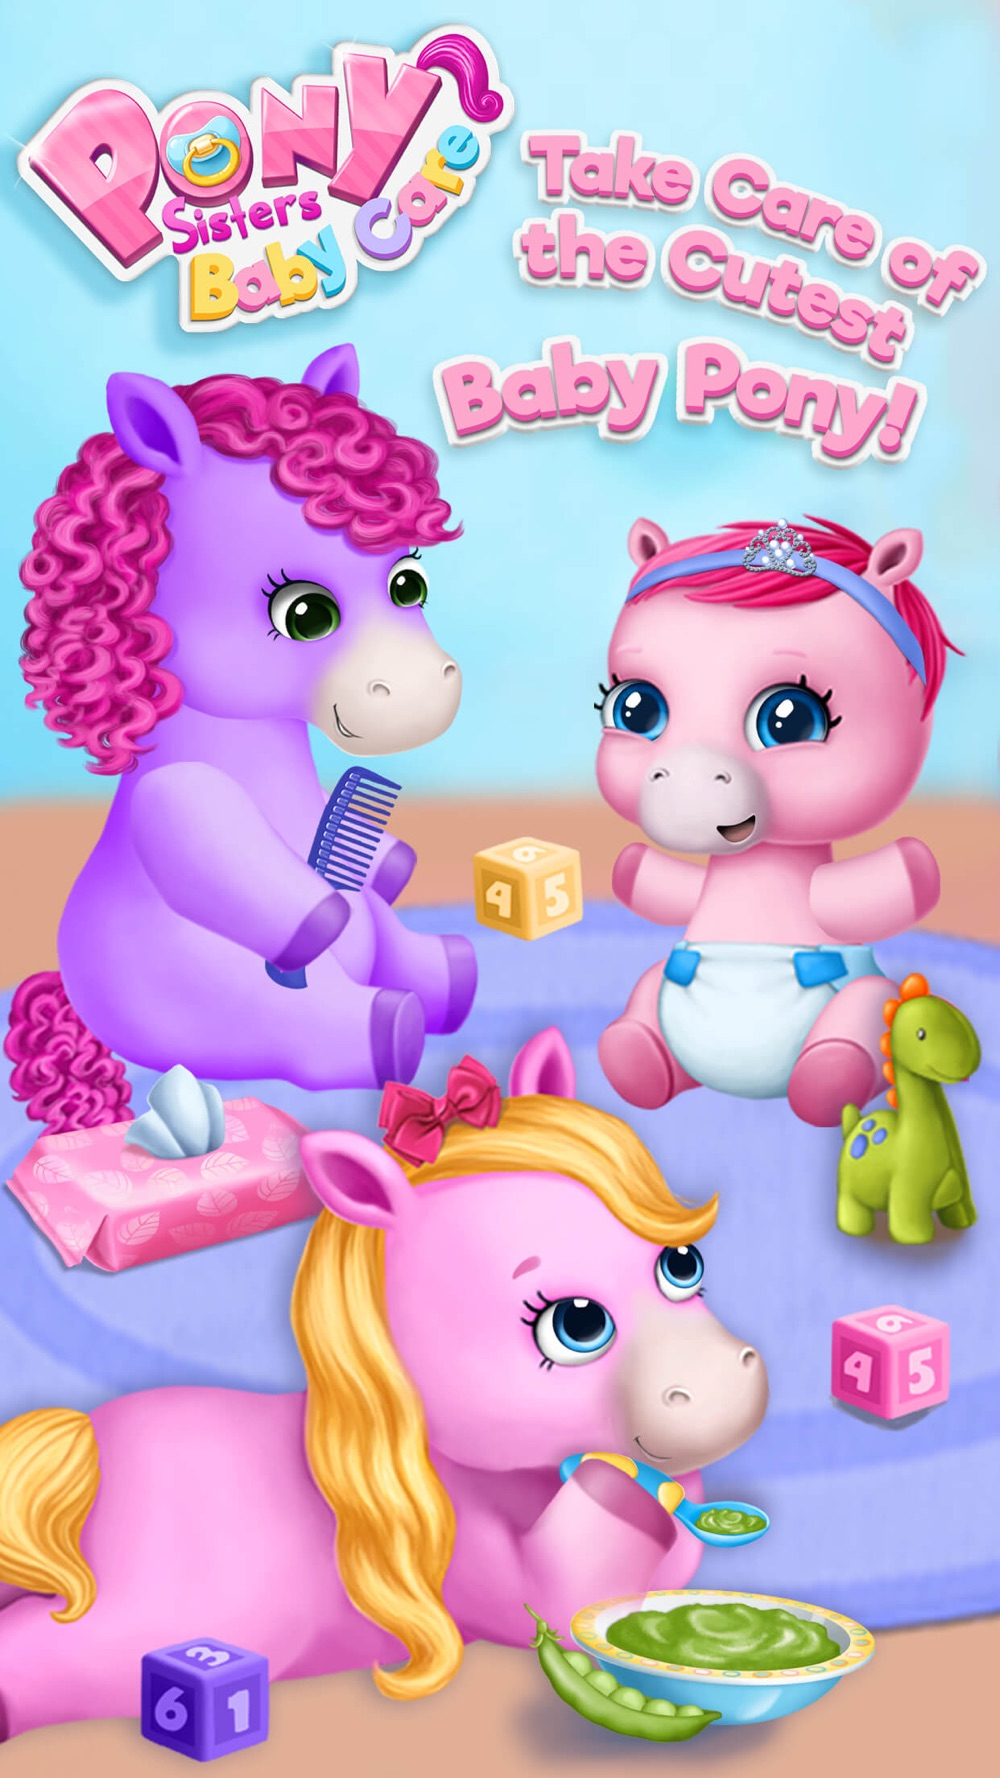 Pony Sisters Baby Horse Care – Babysitter Daycare Cheat Codes